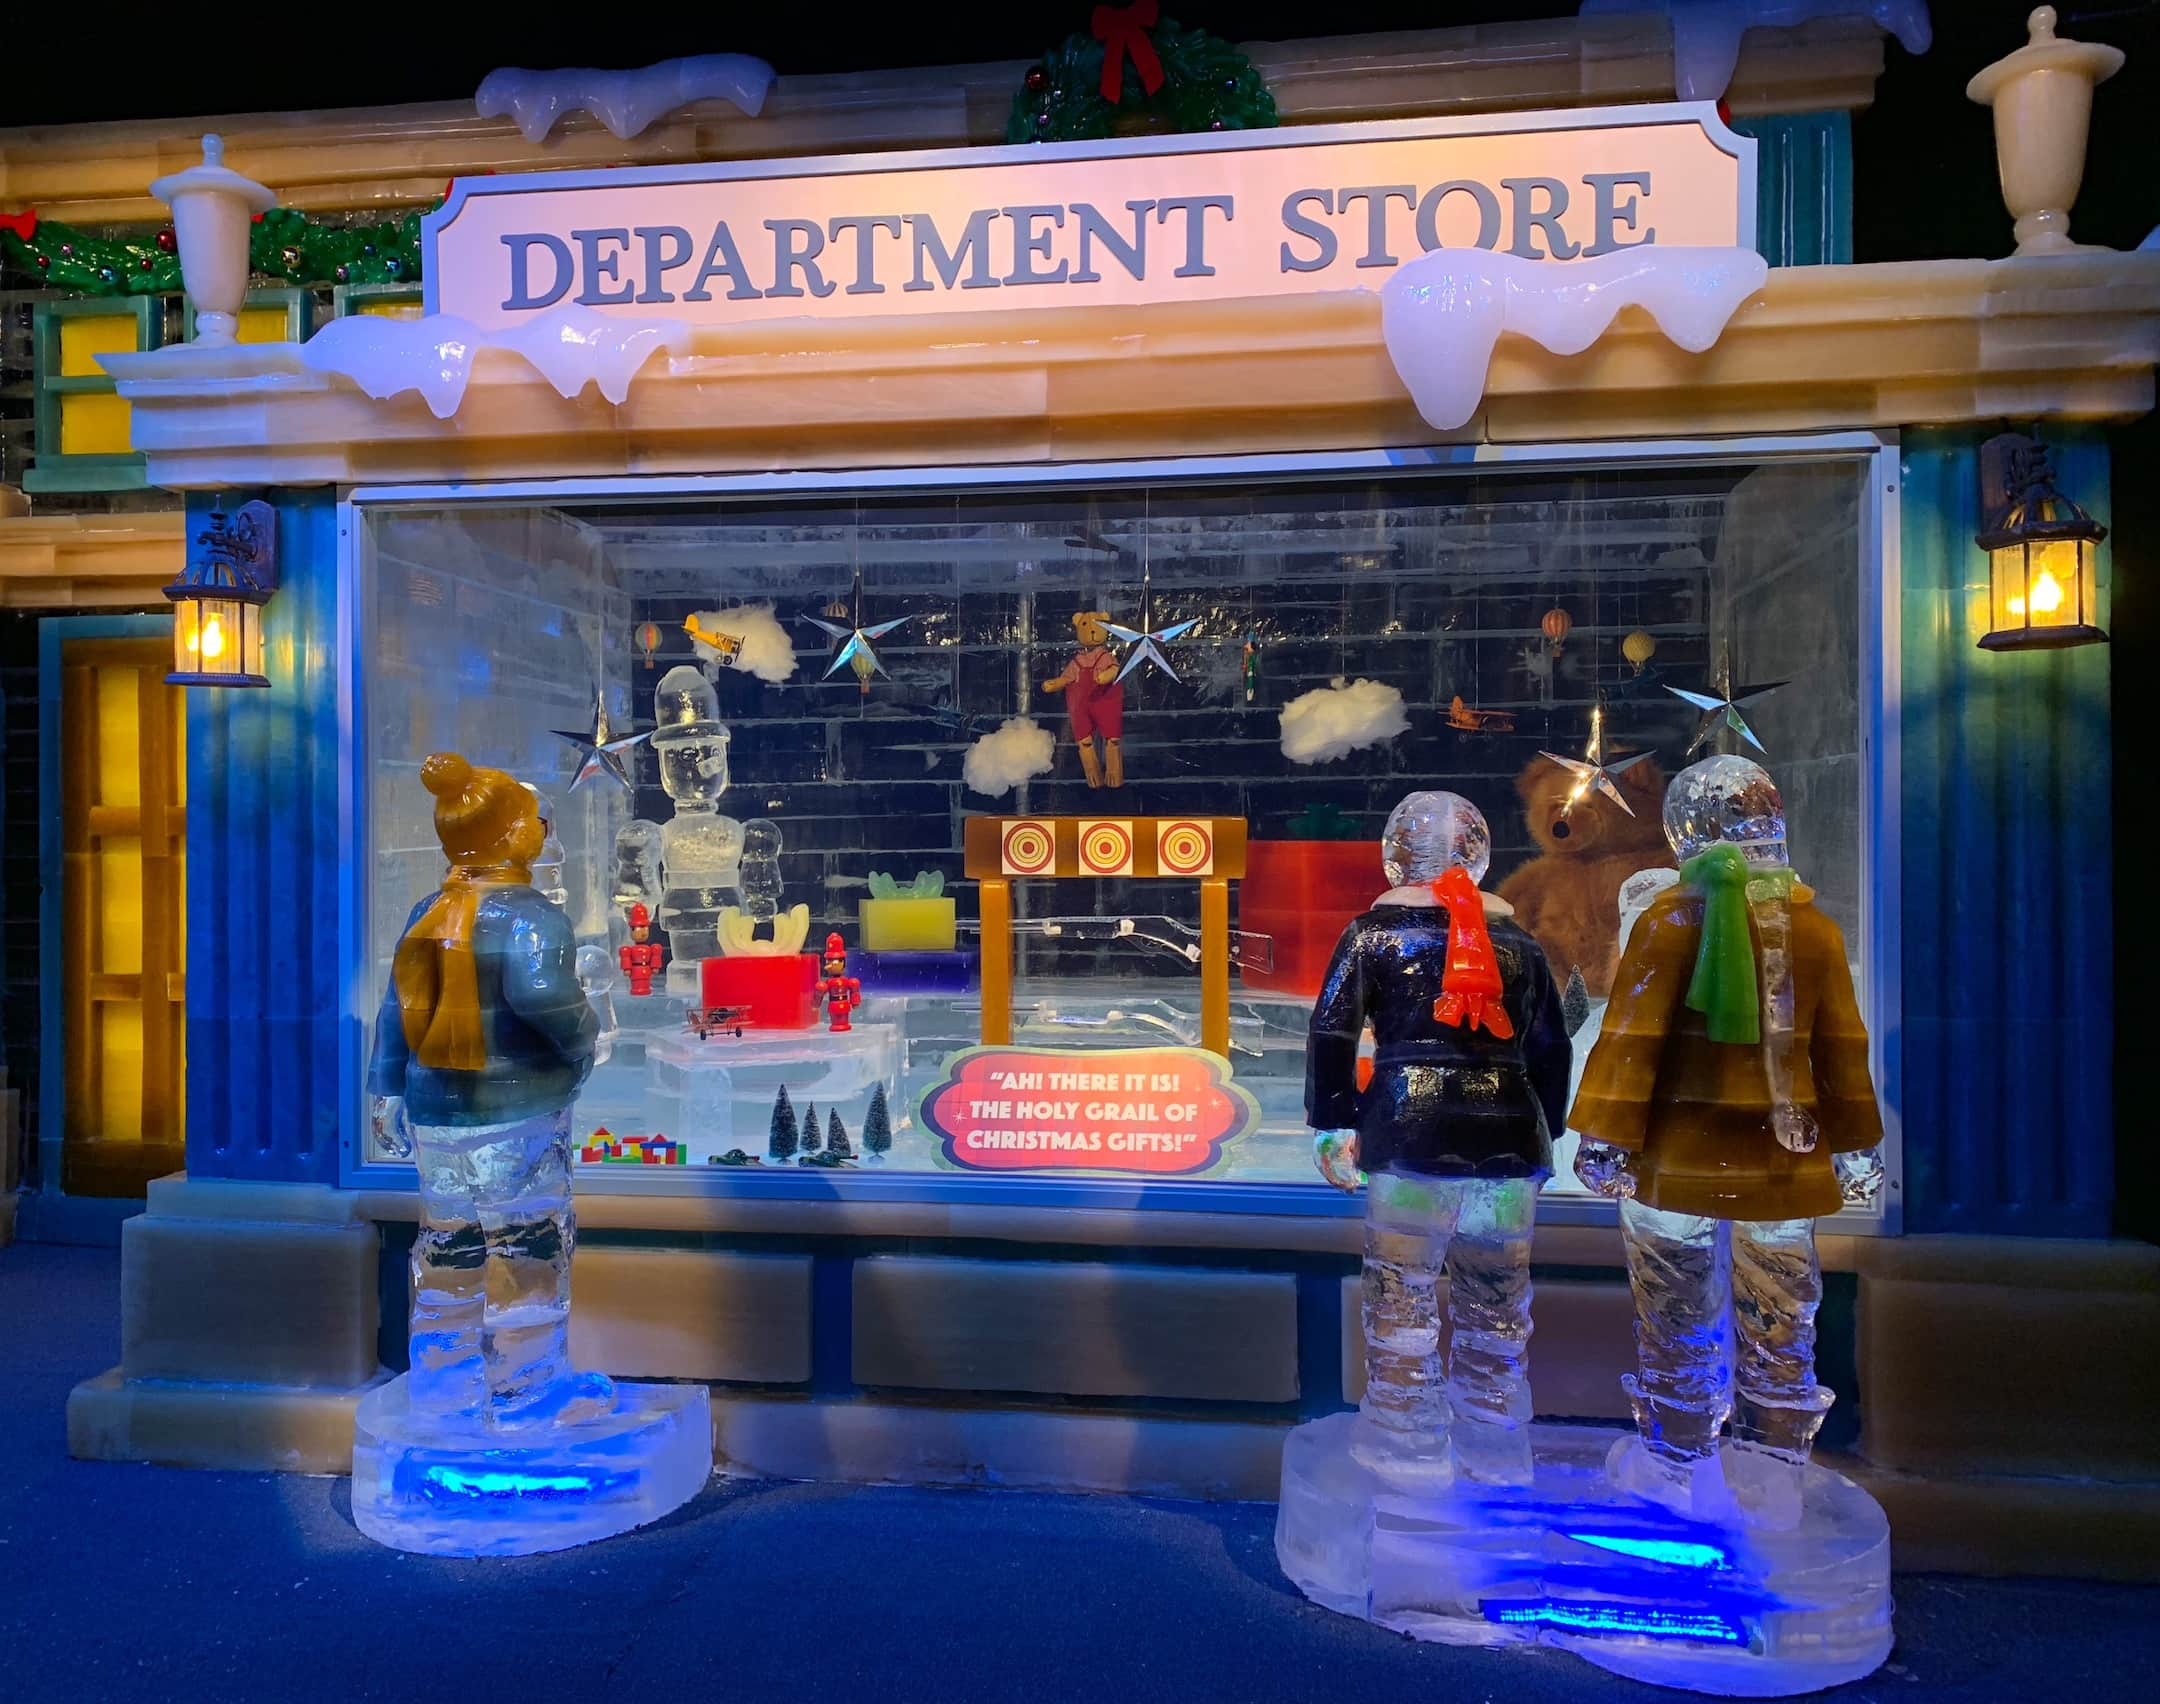 Gaylord Palms ICE 2018 A Christmas Story Orlando Department Store